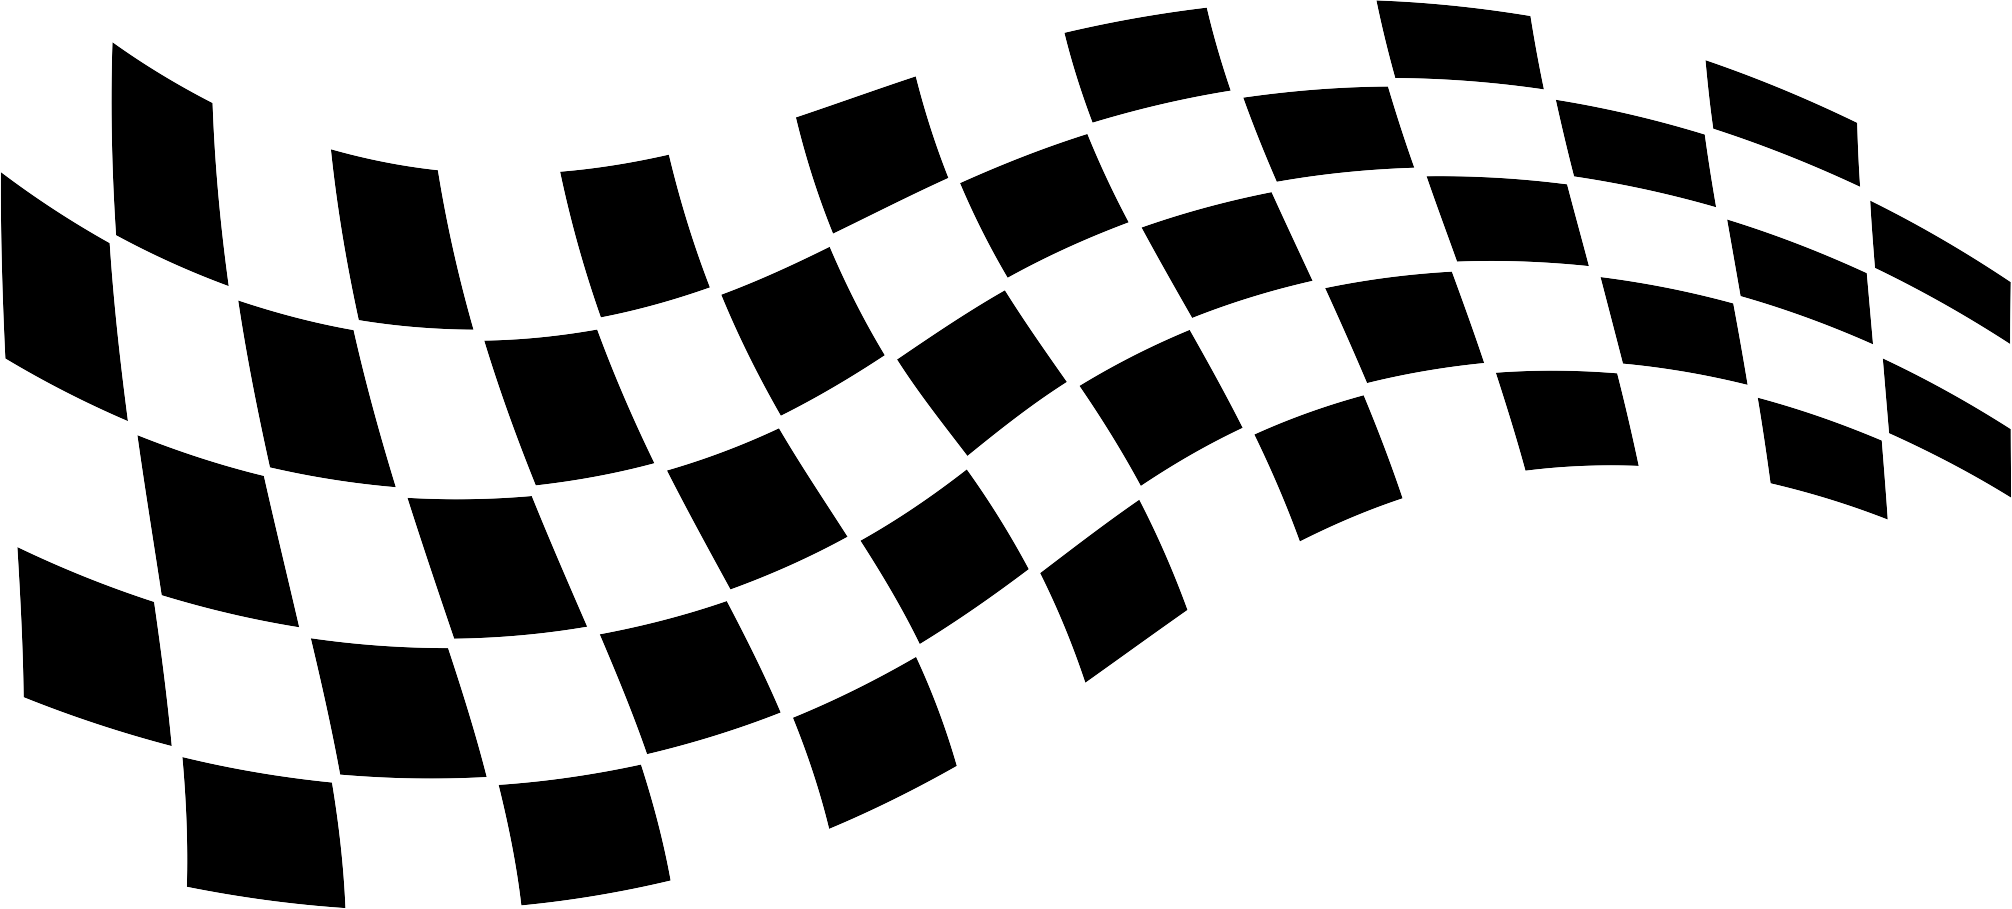 Checkered flag png. Racing transparent images all